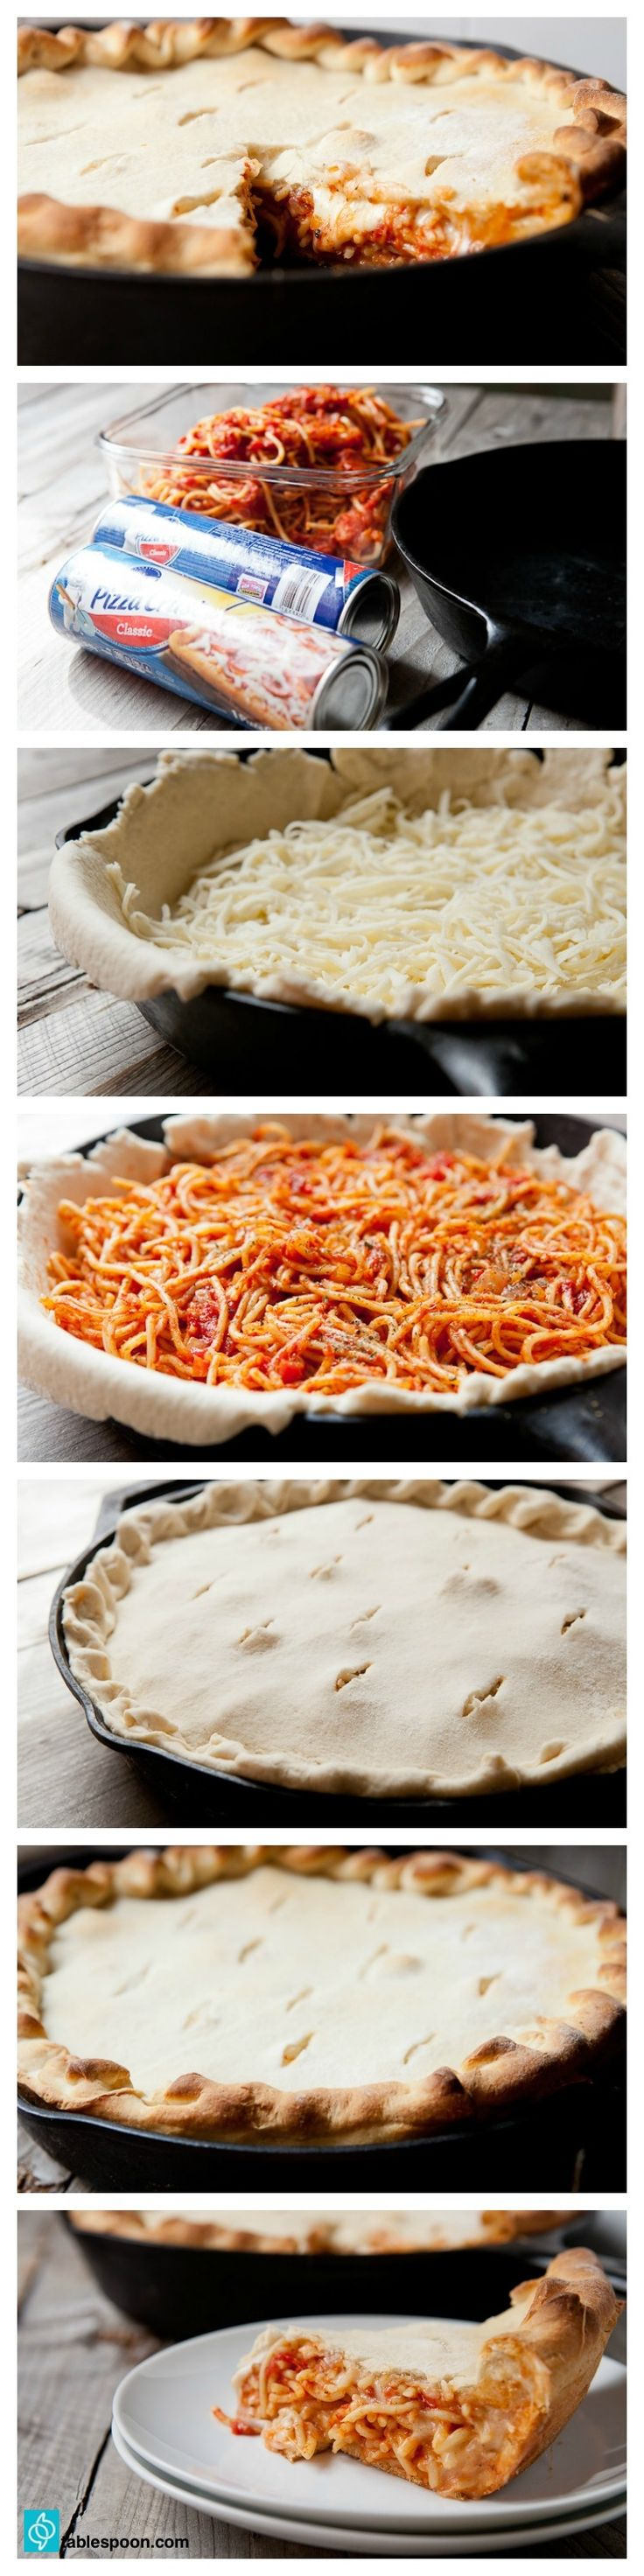 If you've ever been stuck with a lot of leftover pasta, this is the perfect use! Bake it up deep-dish pizza style, with lots of cheese.